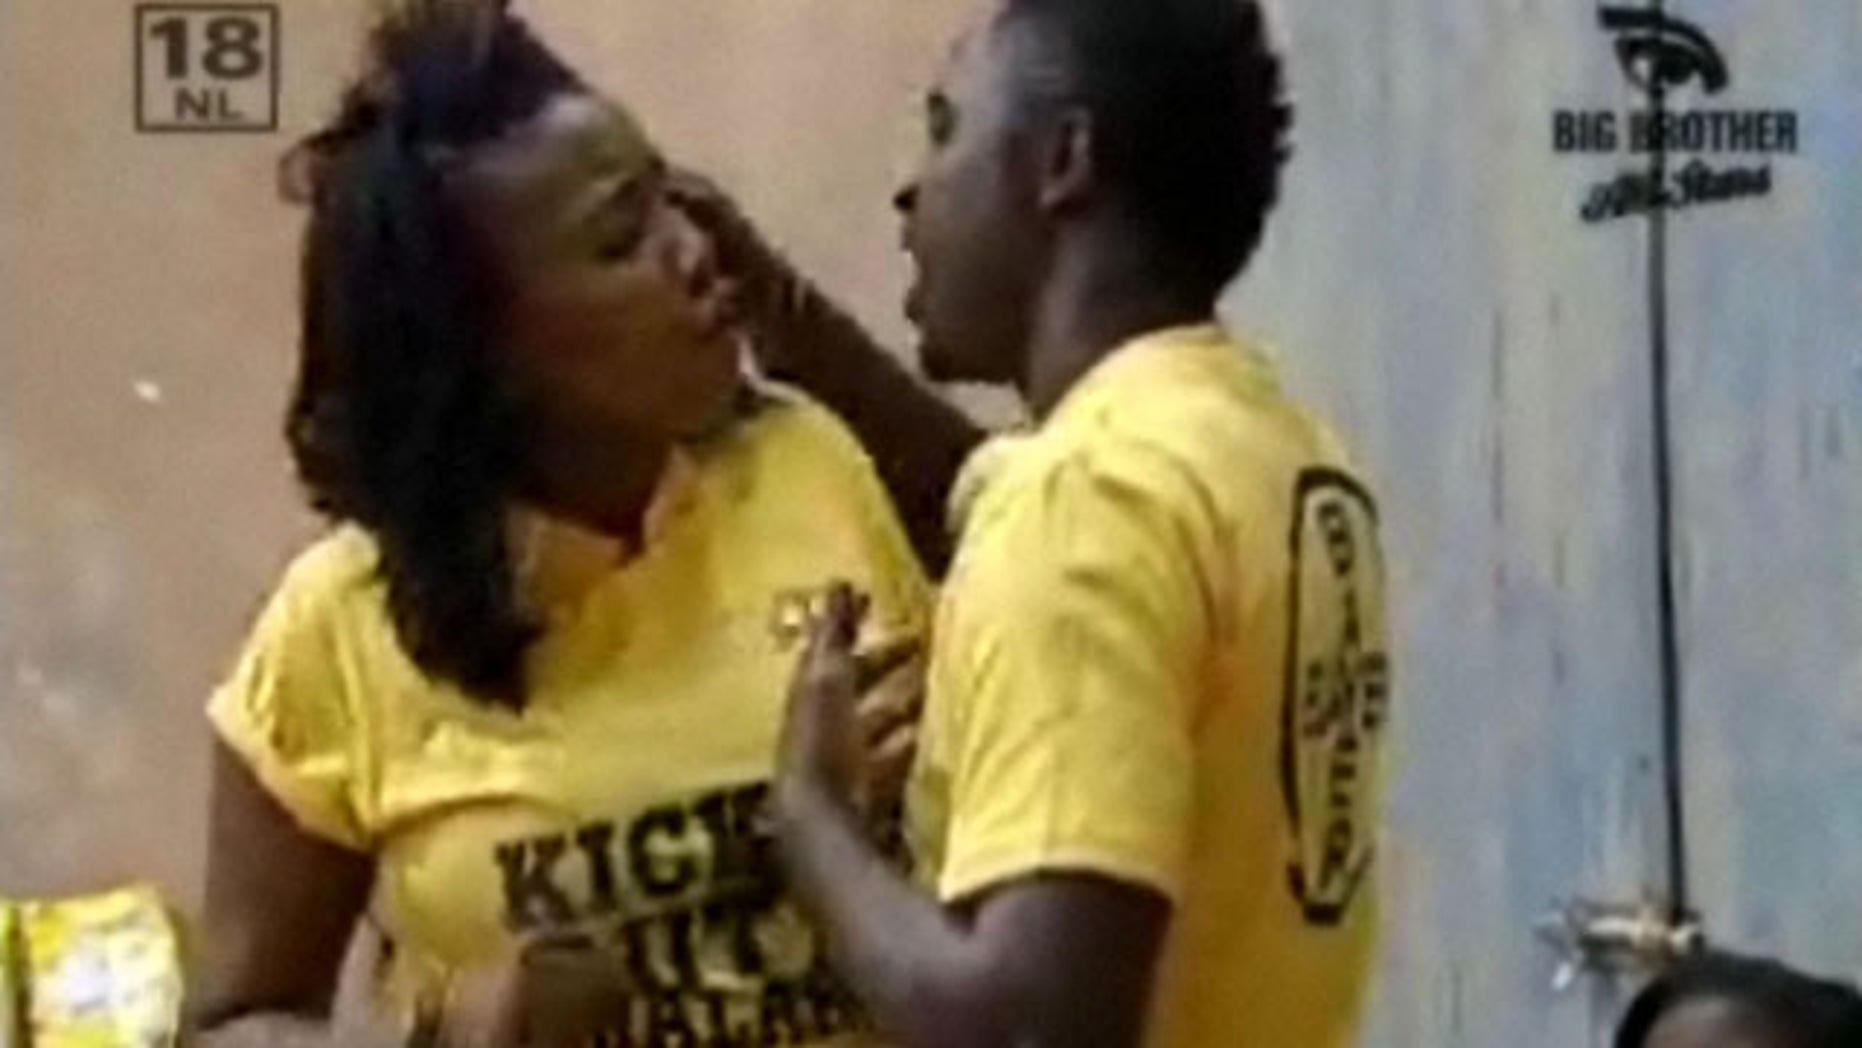 In this framegrab from the Big Brother reality show shows an altercation between Uganda's Hannington Kuteesa, and South Africa's Lerato Sengadi, this week. The South African pay channel says it will evict Kuteesa for assaulting female fellow star Sengadi on air. (AP)